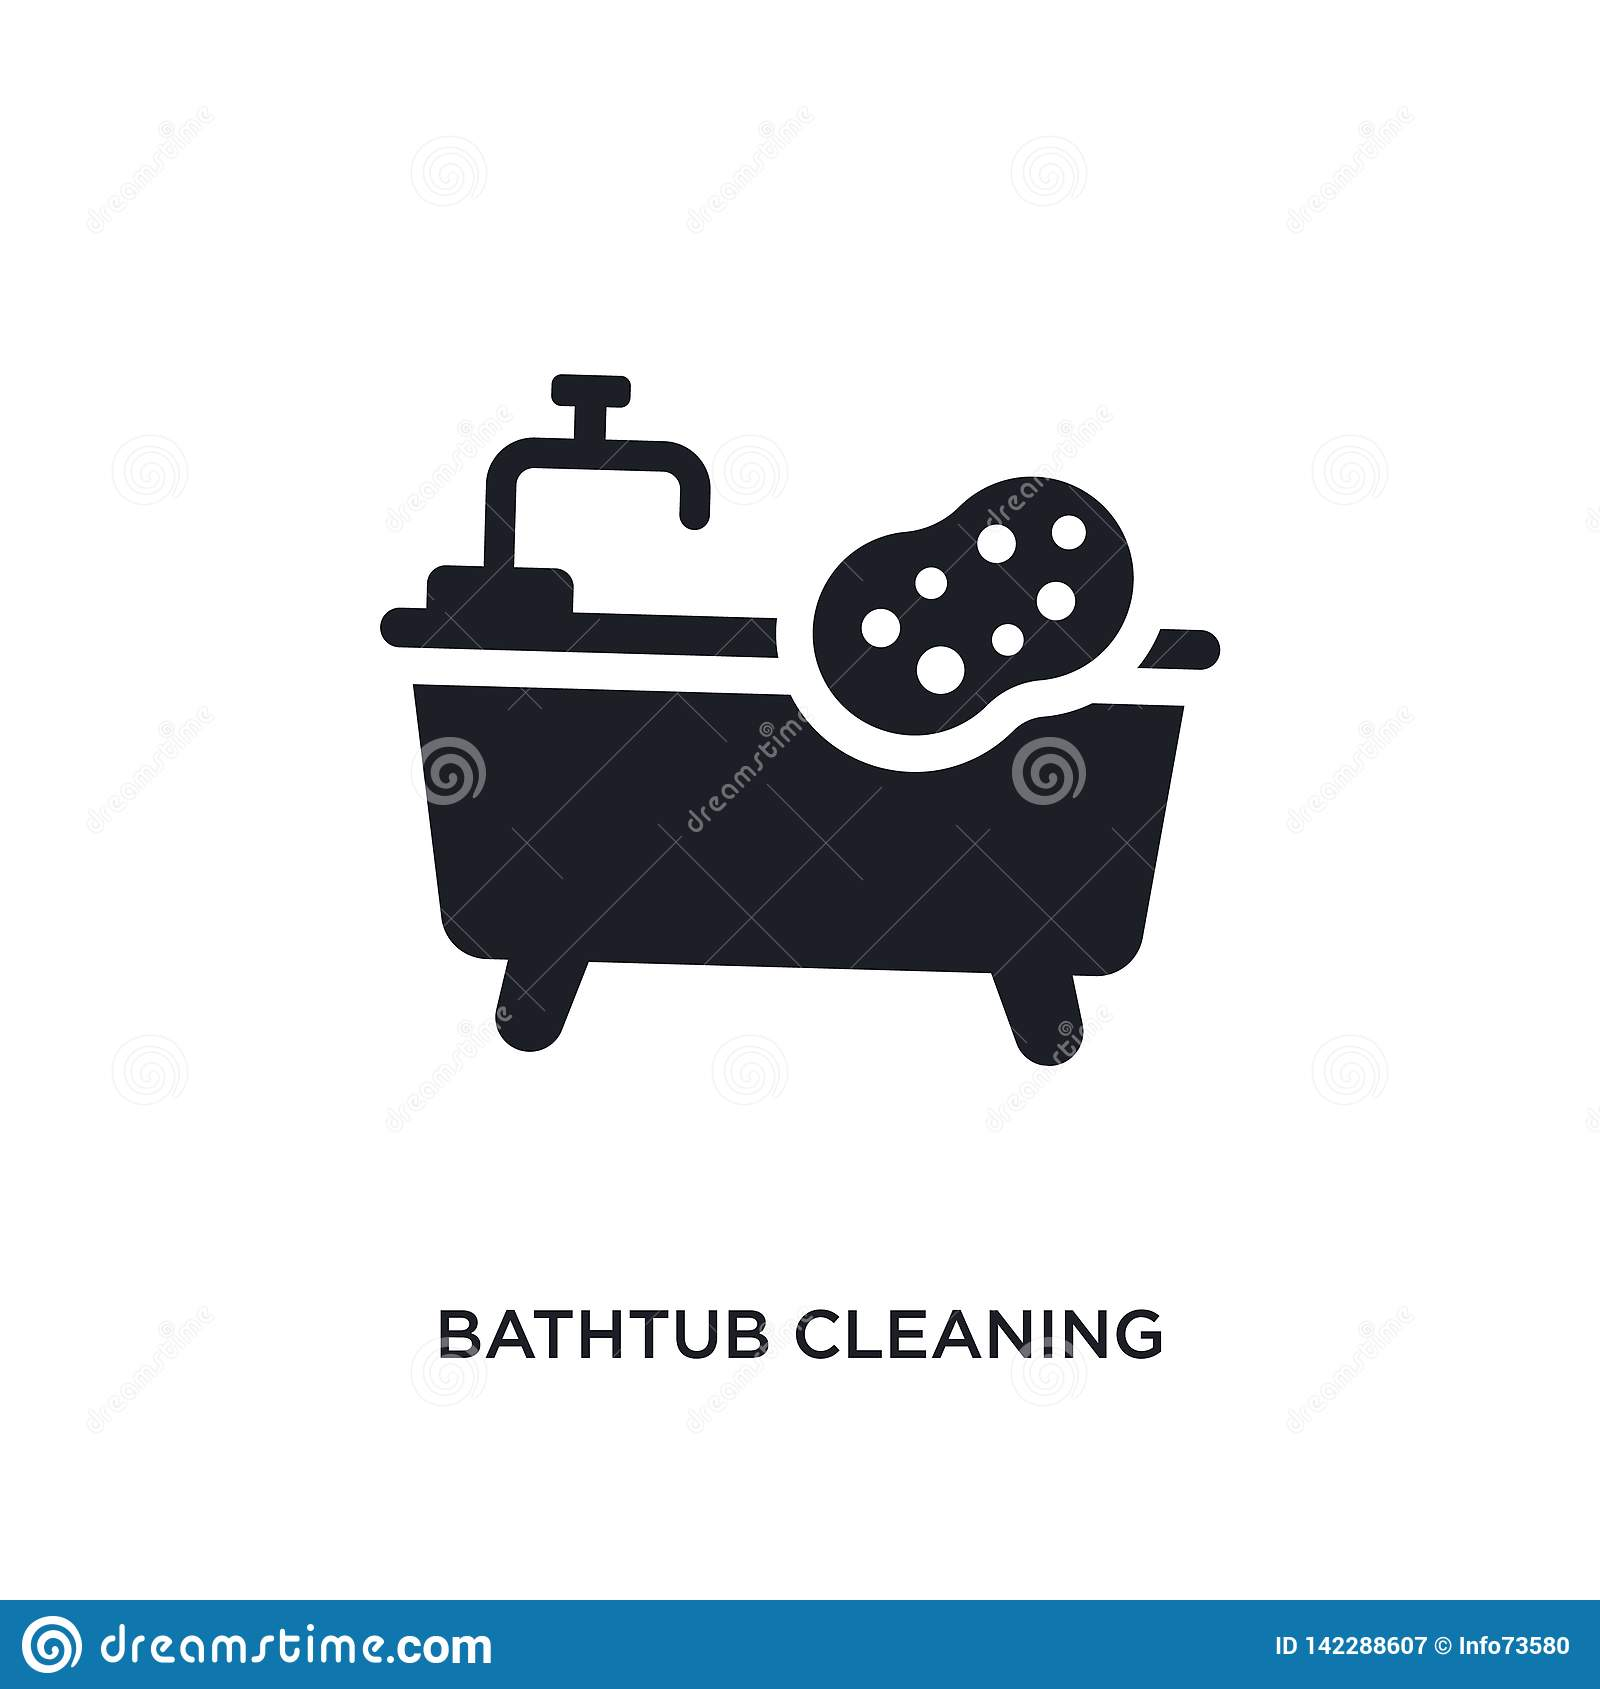 bathtub cleaning isolated icon. simple element illustration from cleaning concept icons. bathtub cleaning editable logo sign